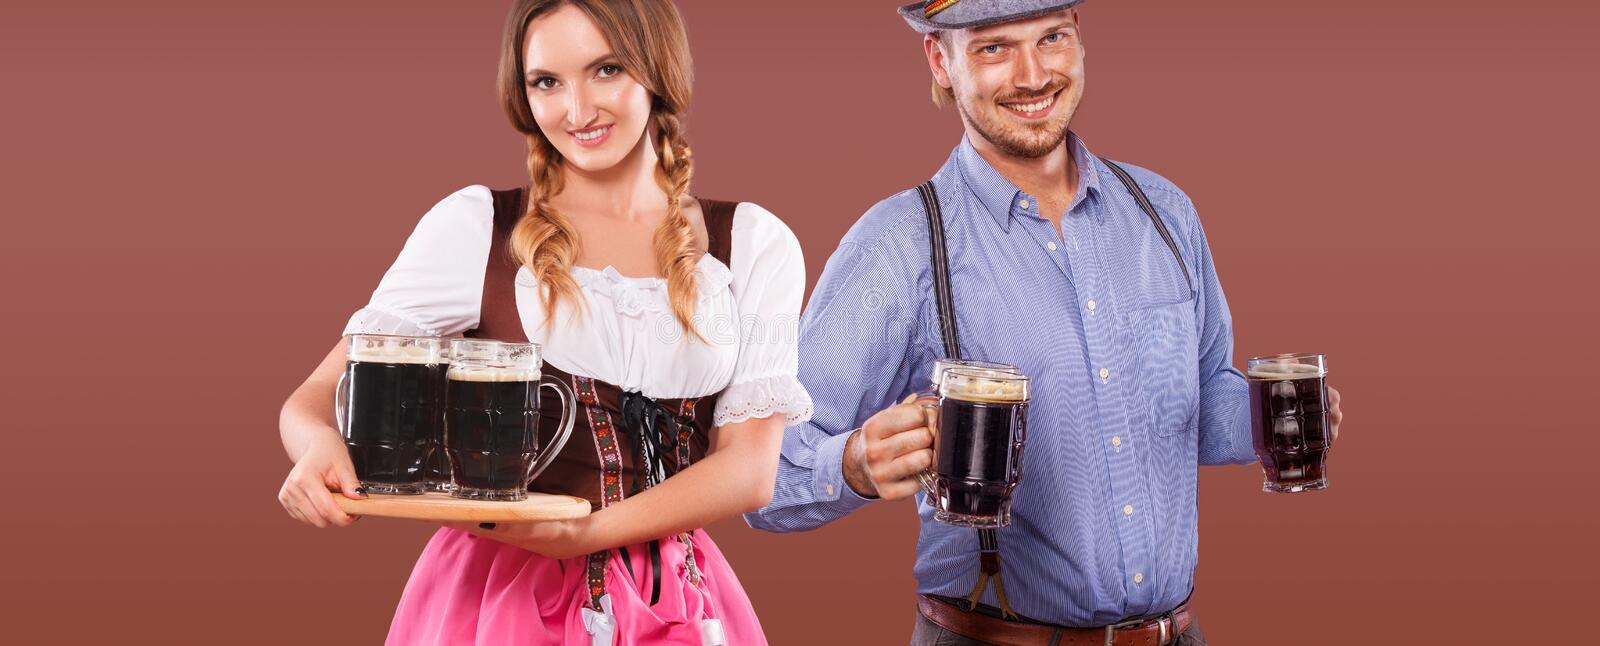 Portrait of happy Oktoberfest man and woman, wearing a traditional Bavarian clothes, serving big beer mugs on brown royalty free stock photo